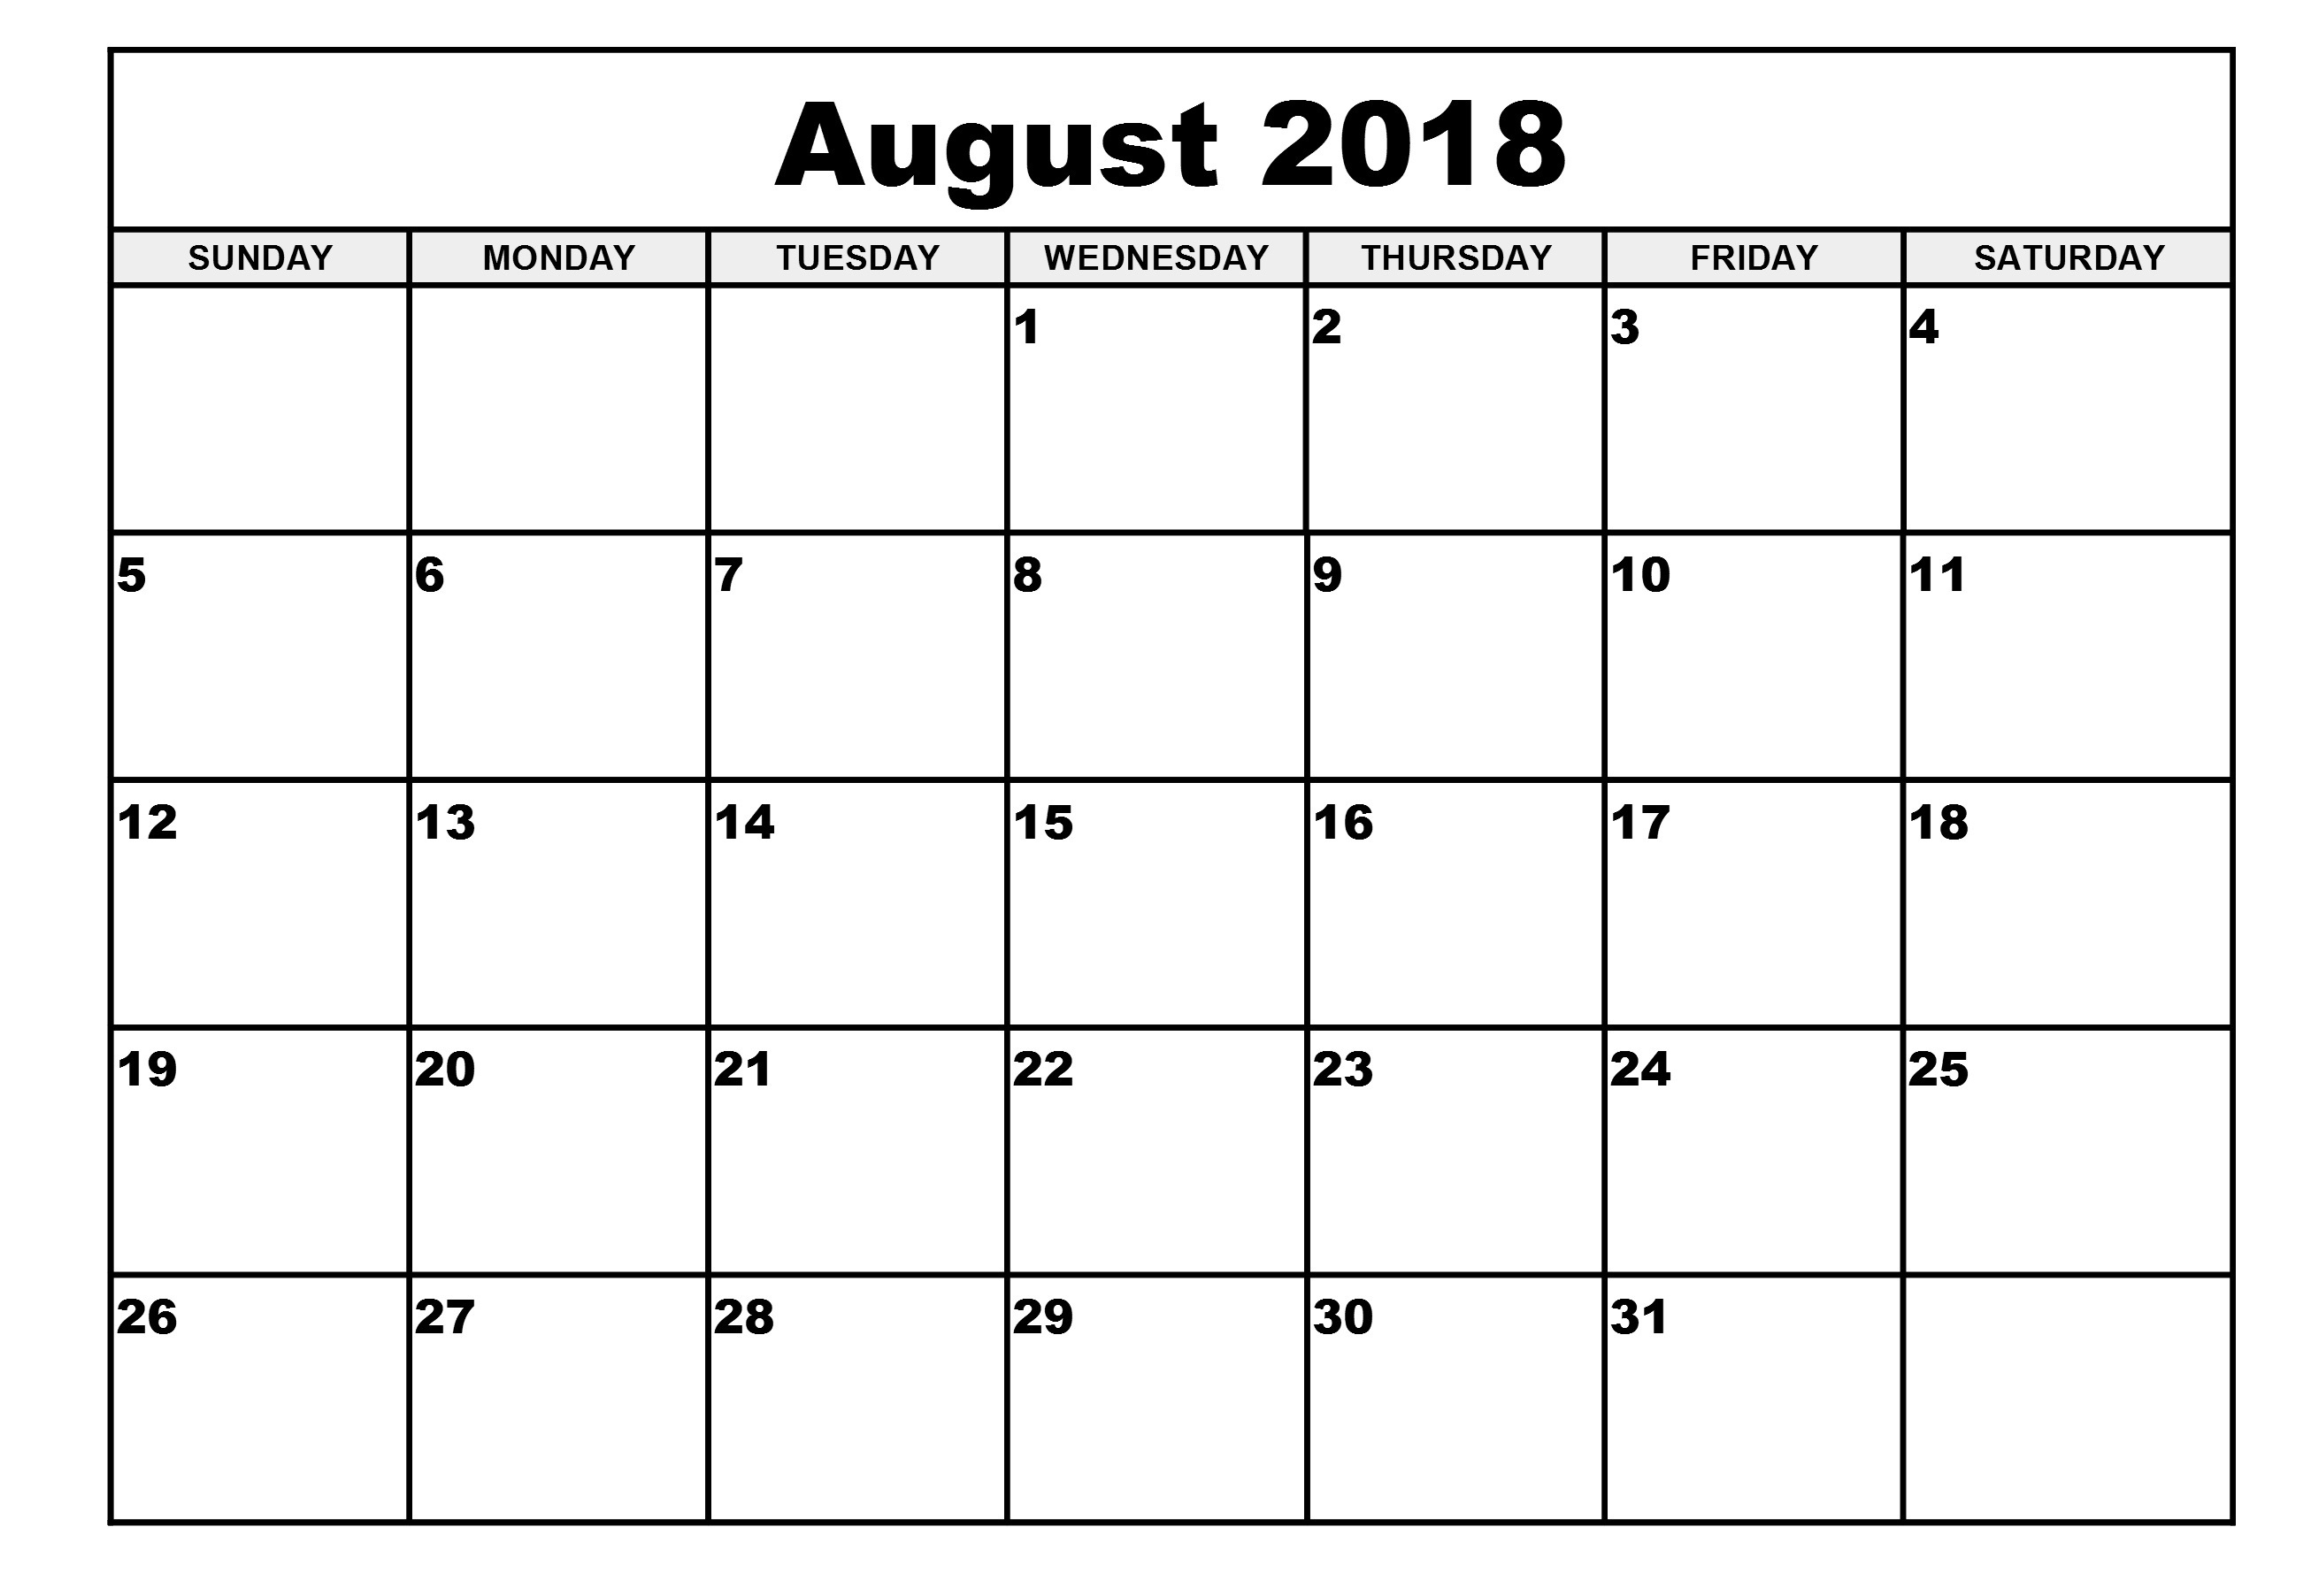 August Calendar 2018 Template - Free Printable Calendar, Blank with regard to Blank Printable Calendar Pages Aug